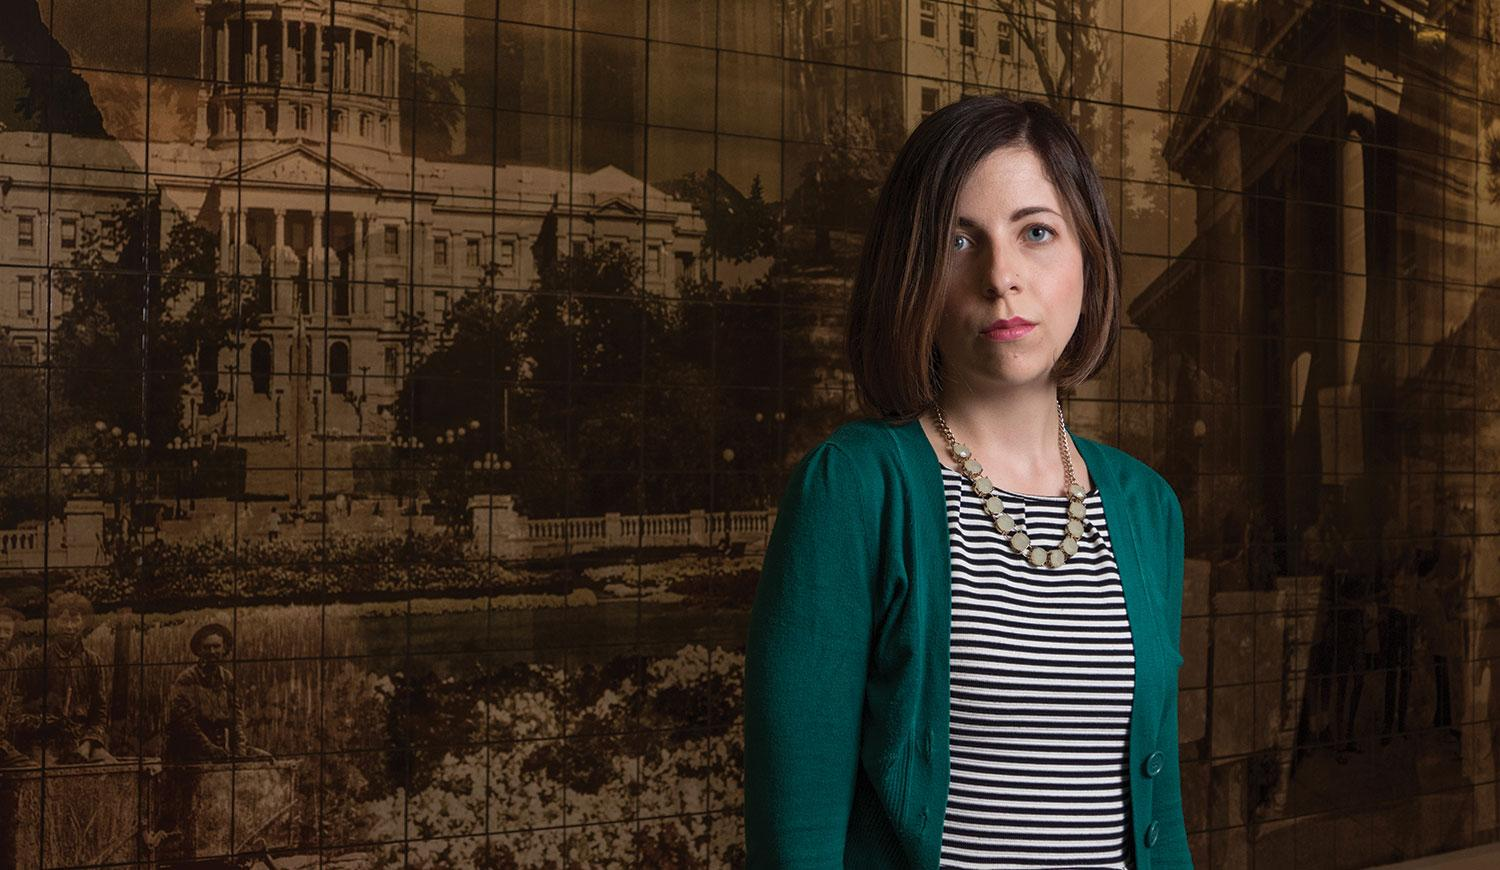 Kate Mattern plans to work as a public defender.